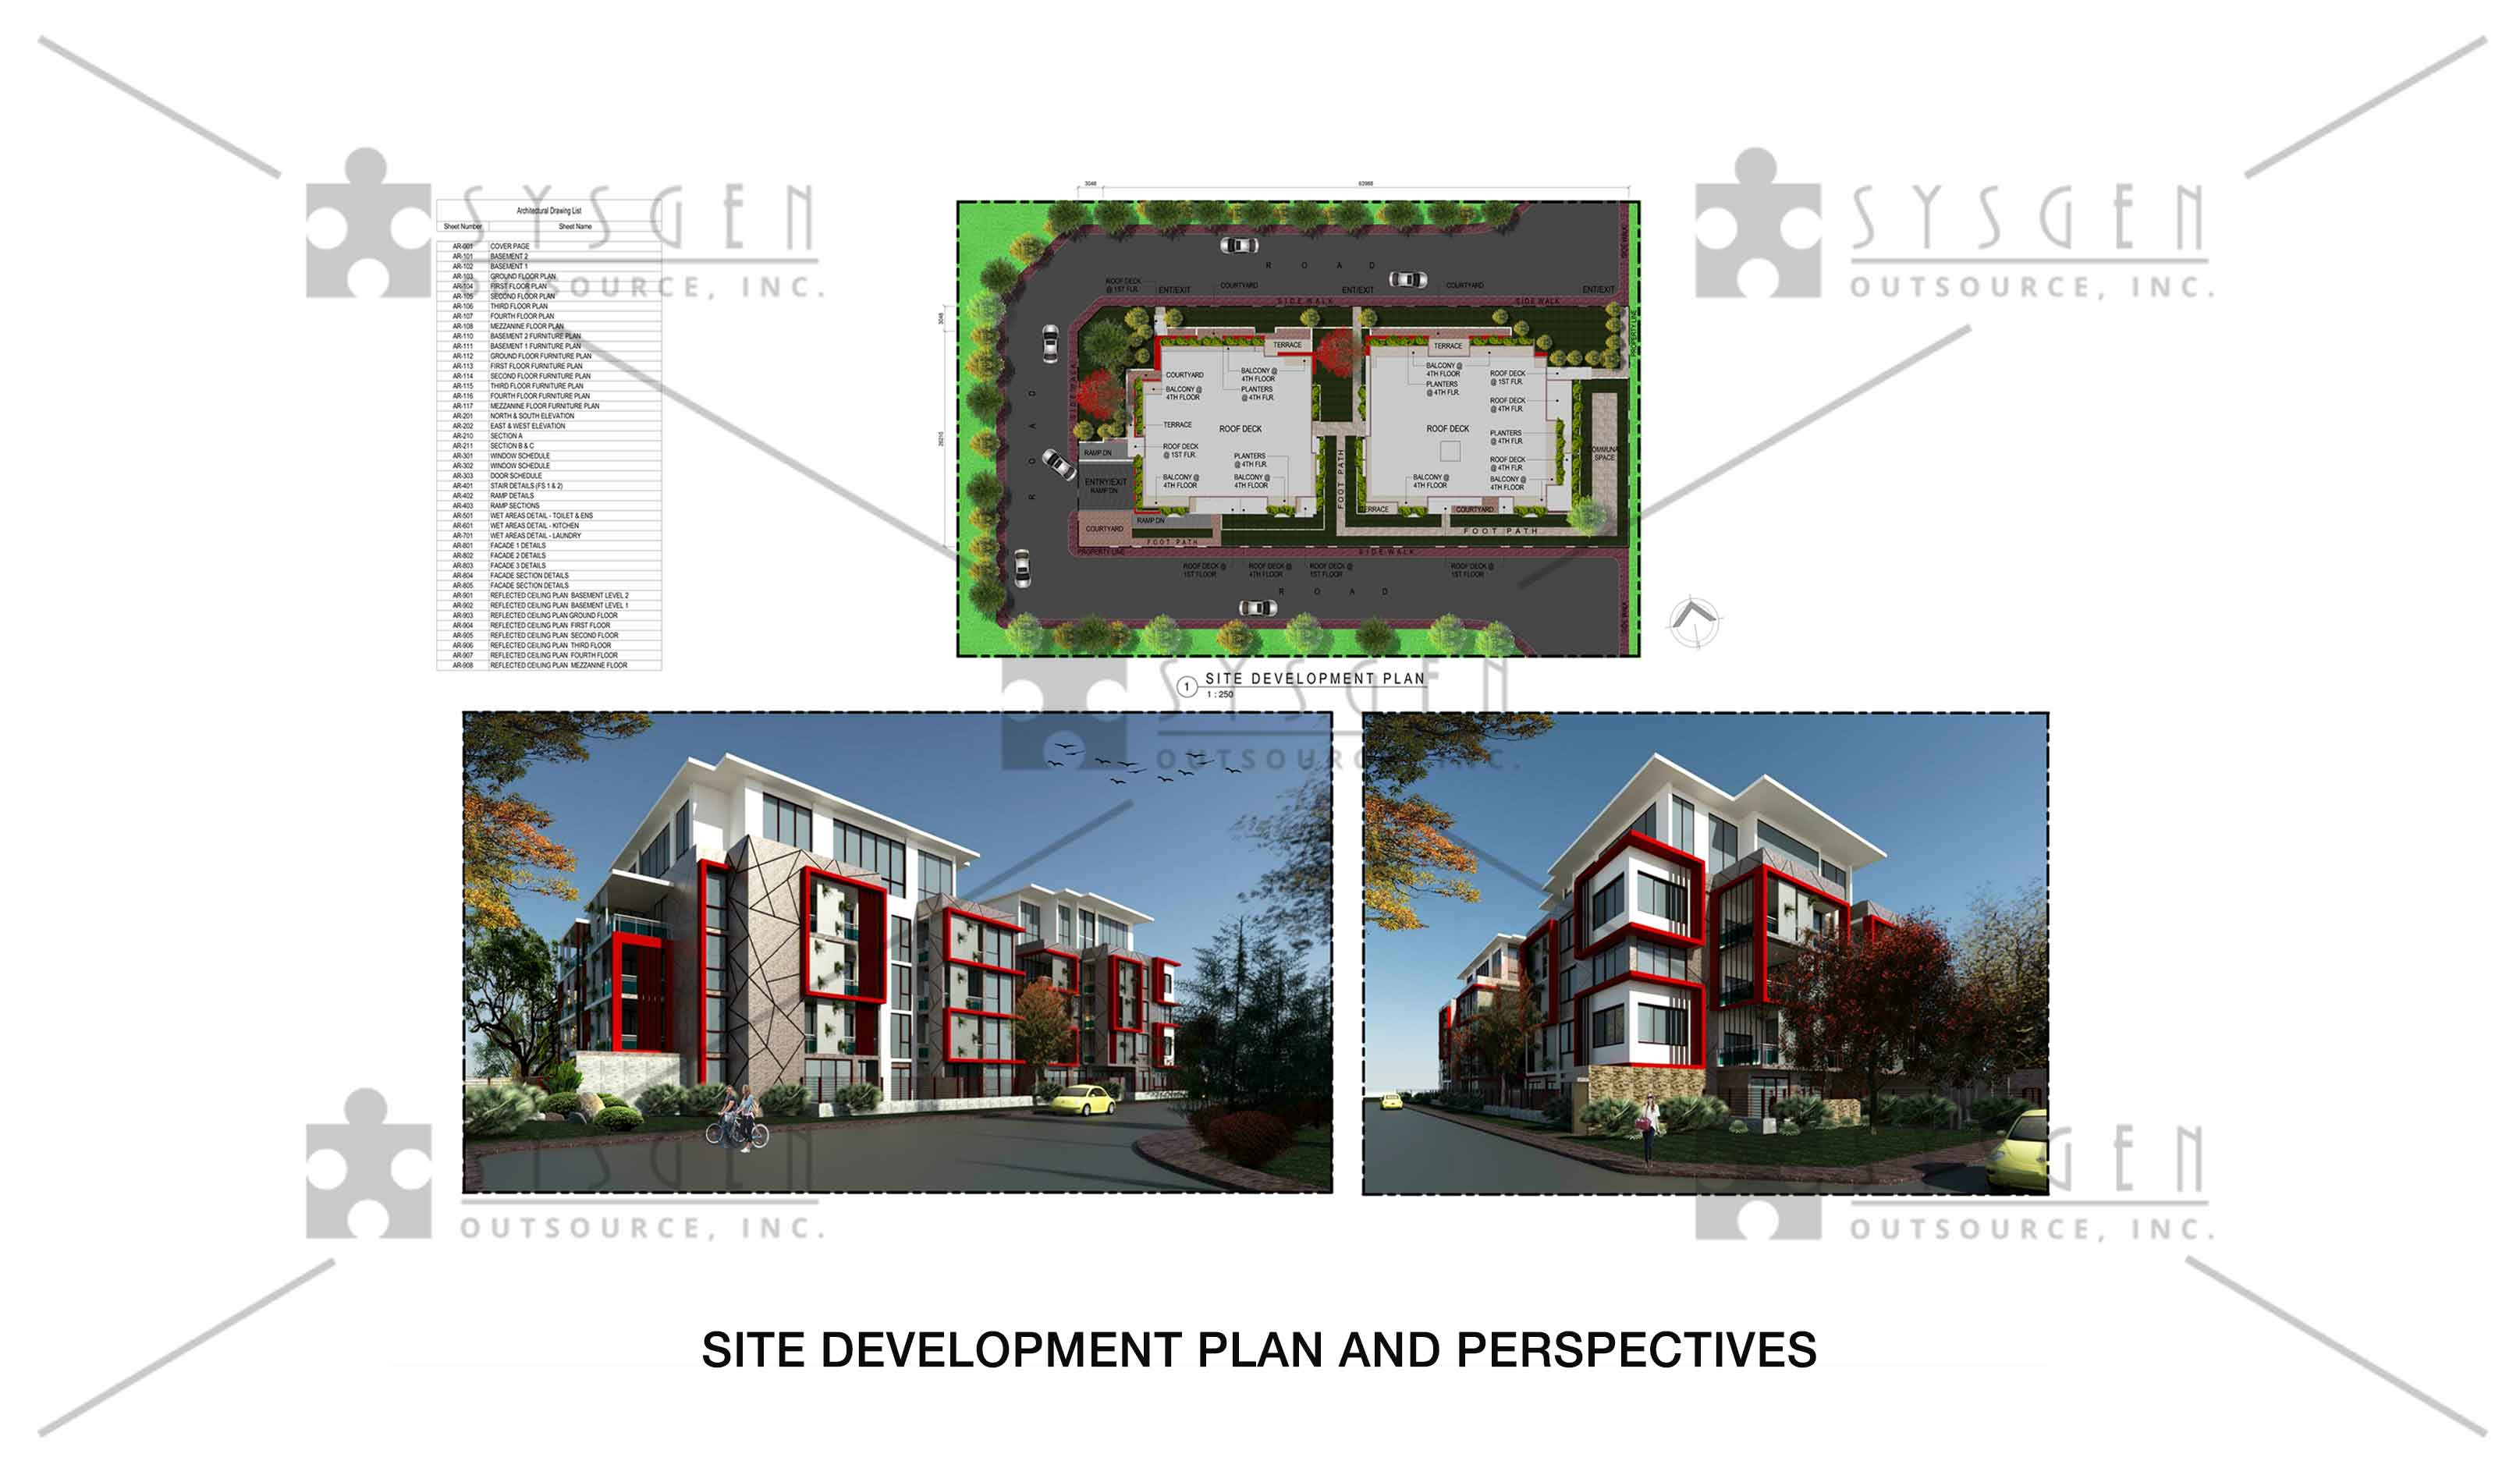 sysgen-outsource-cad-outsourcing-services-cad-conversions-revit-4-storey-residentialss